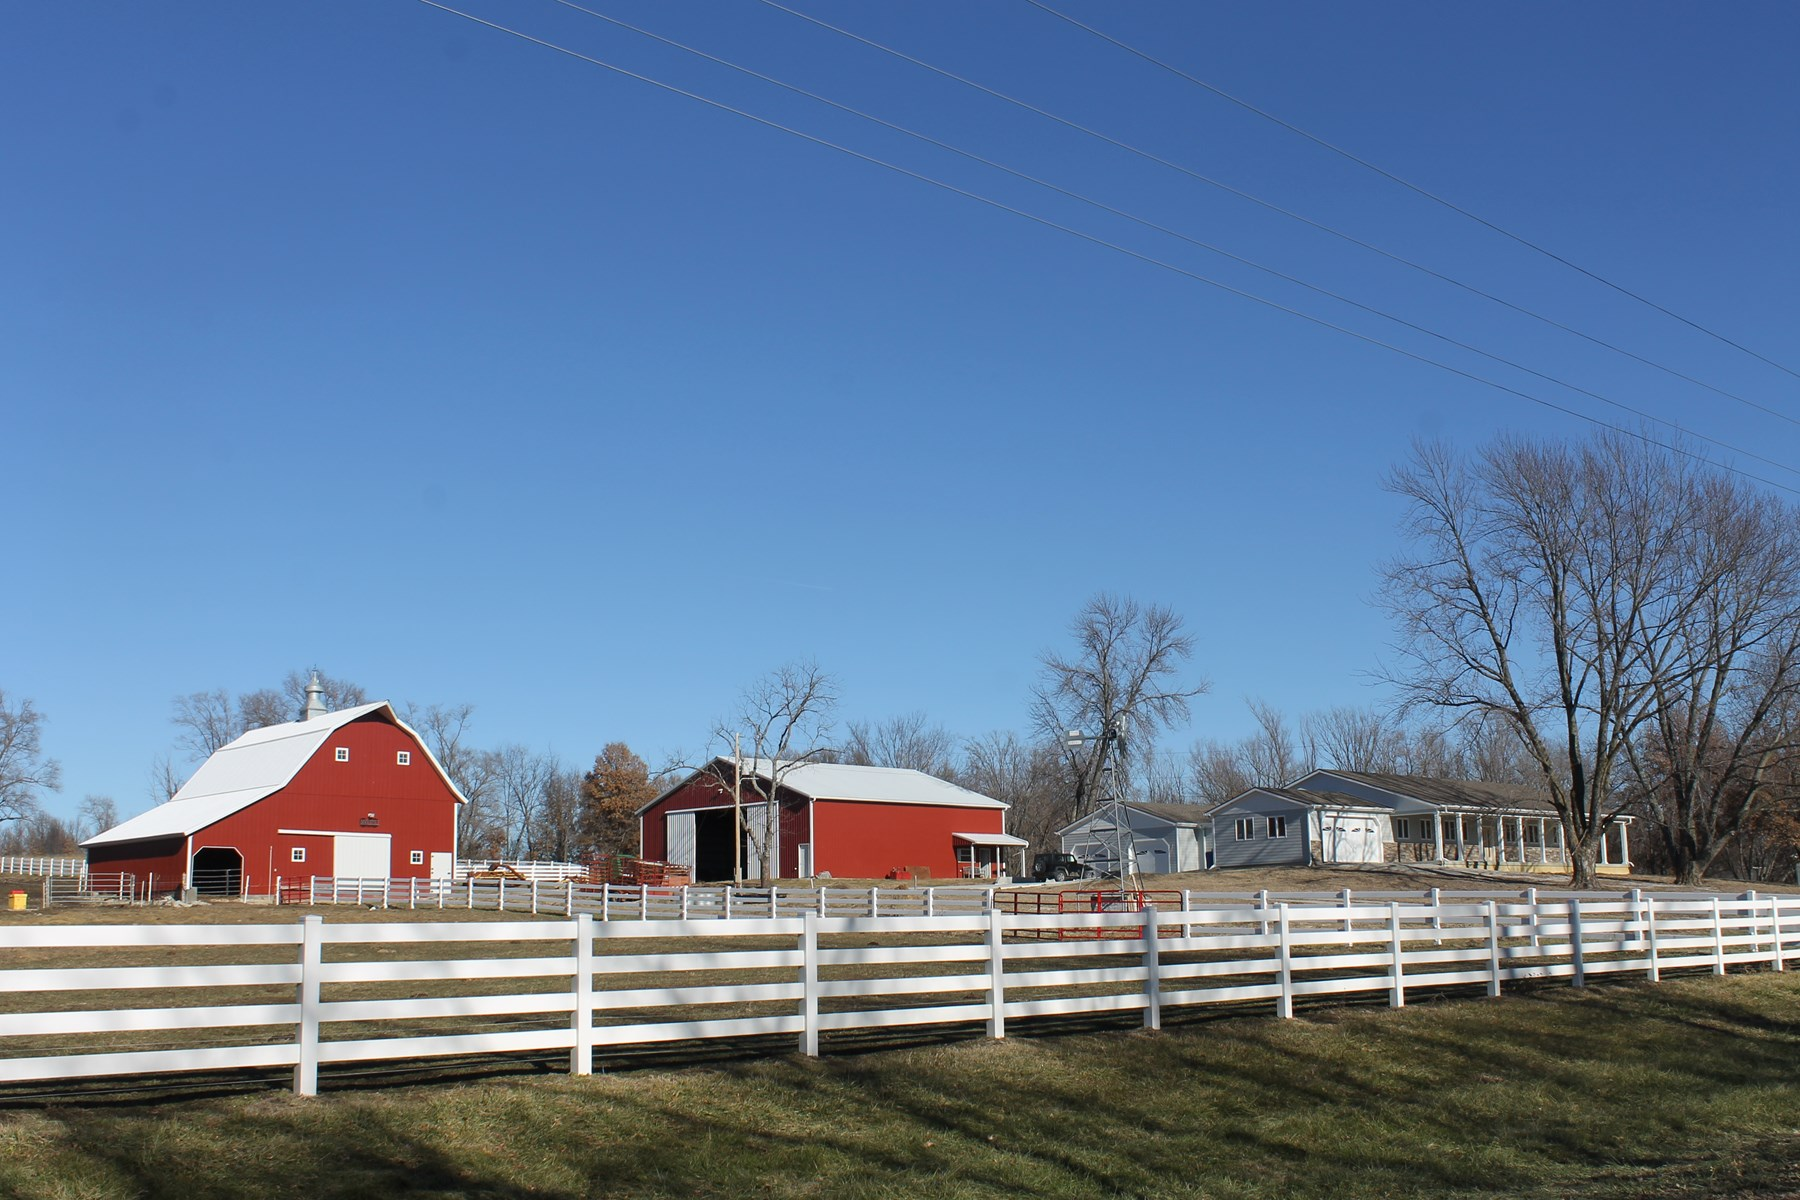 FOR SALE CAMERON MO 16 ACRES & NEW 4000 SQ FT RANCH HOME